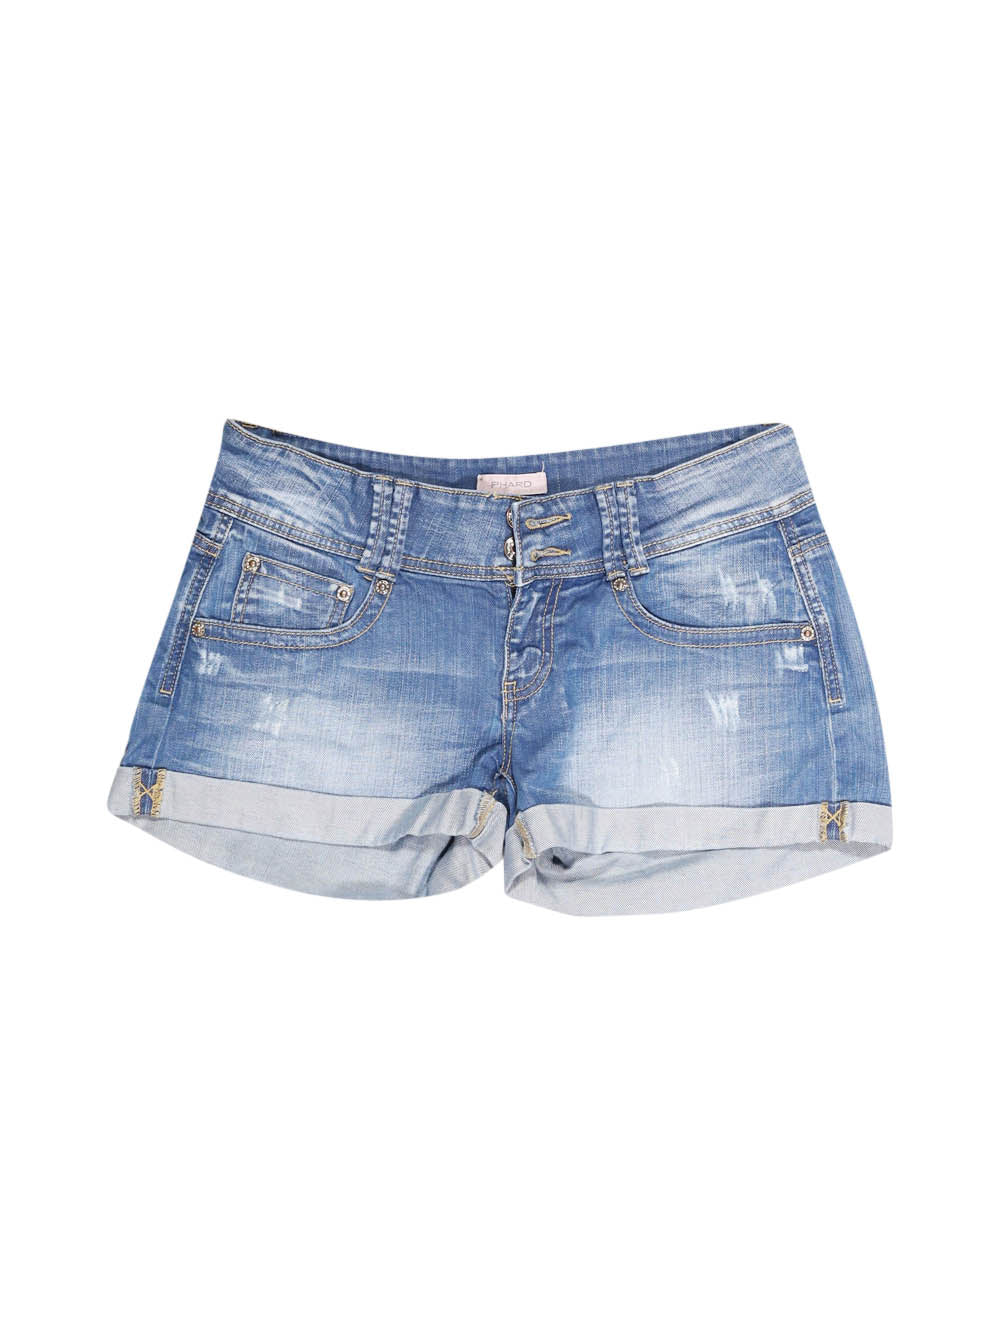 Front photo of Preloved Phard Blue Woman's shorts - size 12/L